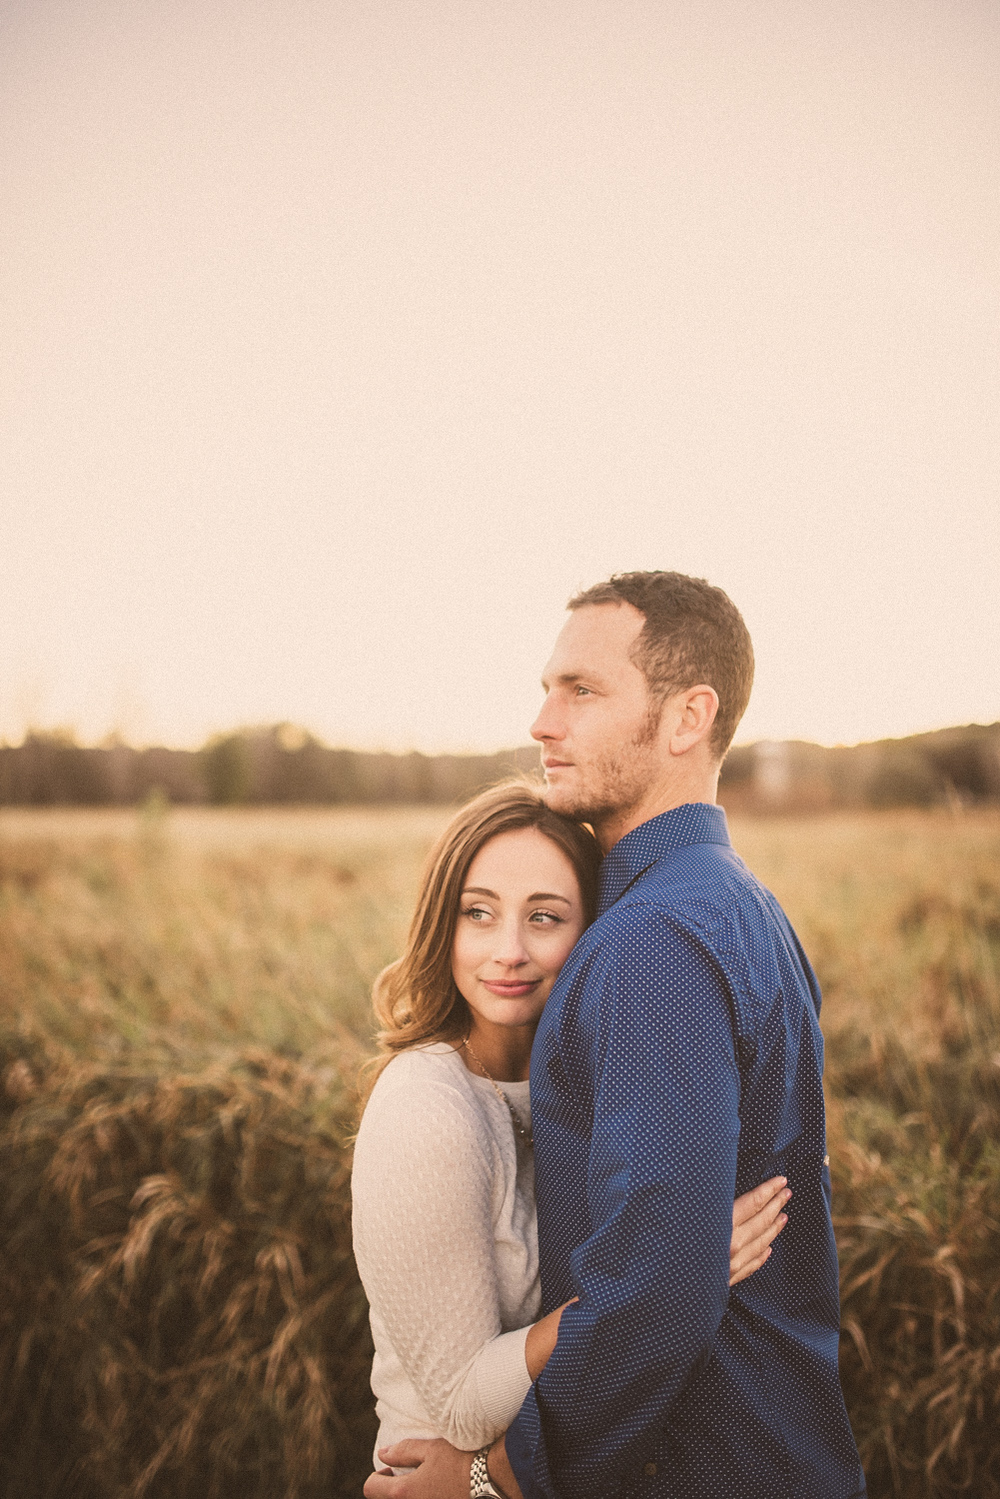 Ryan Inman Hayley Chad Grand Rapids Engagement Photographer - 48.jpg